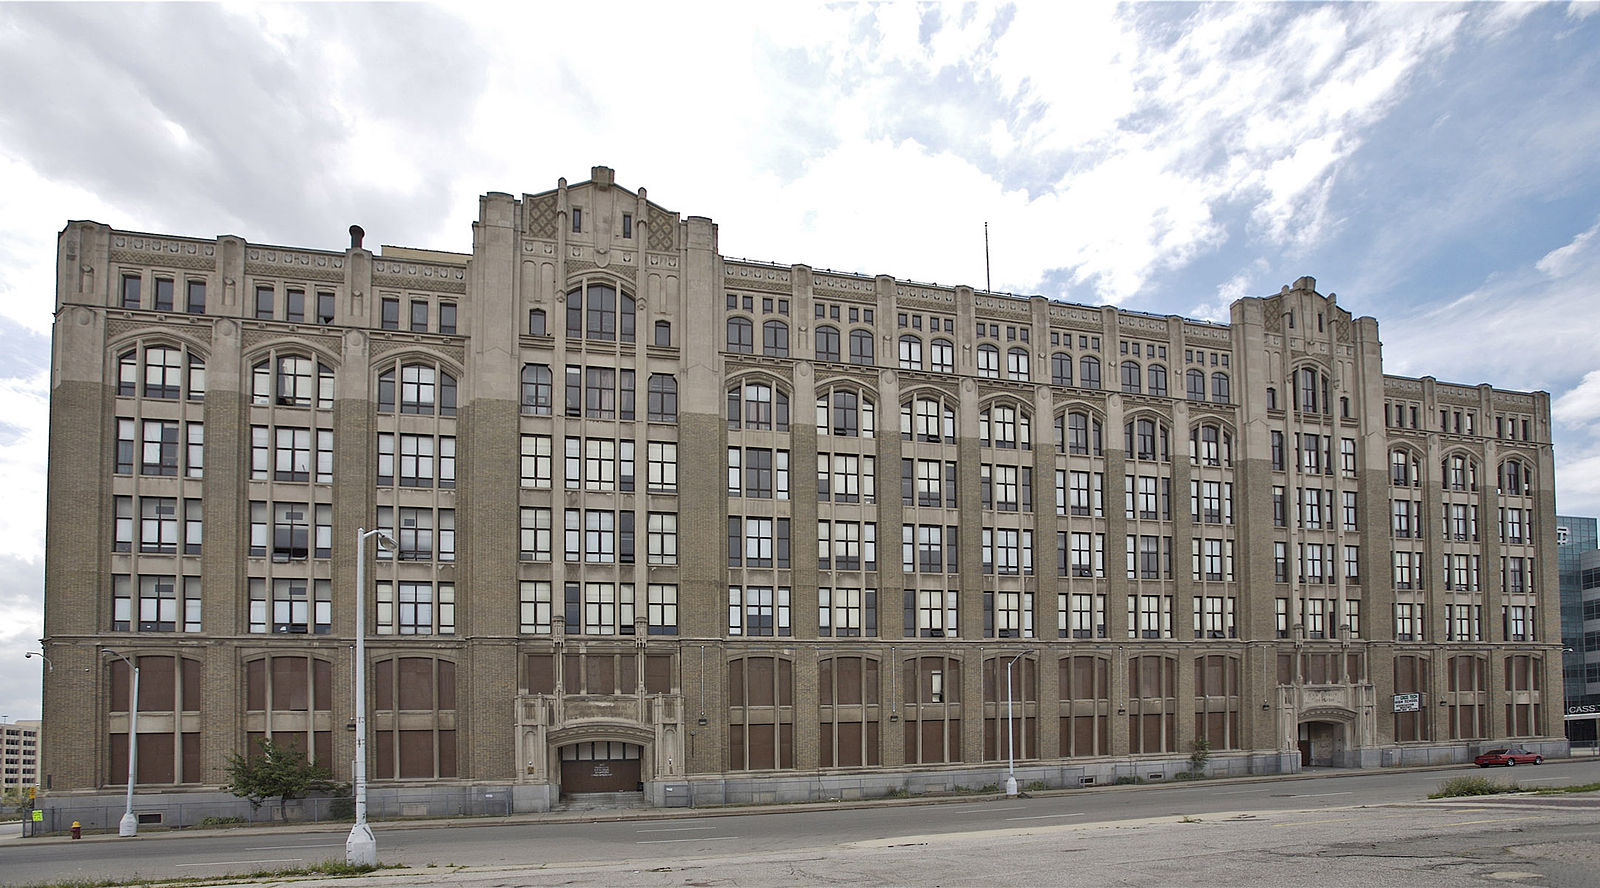 A long brick and limestone building with multiple windows and floors. The first two stories are boarded up.